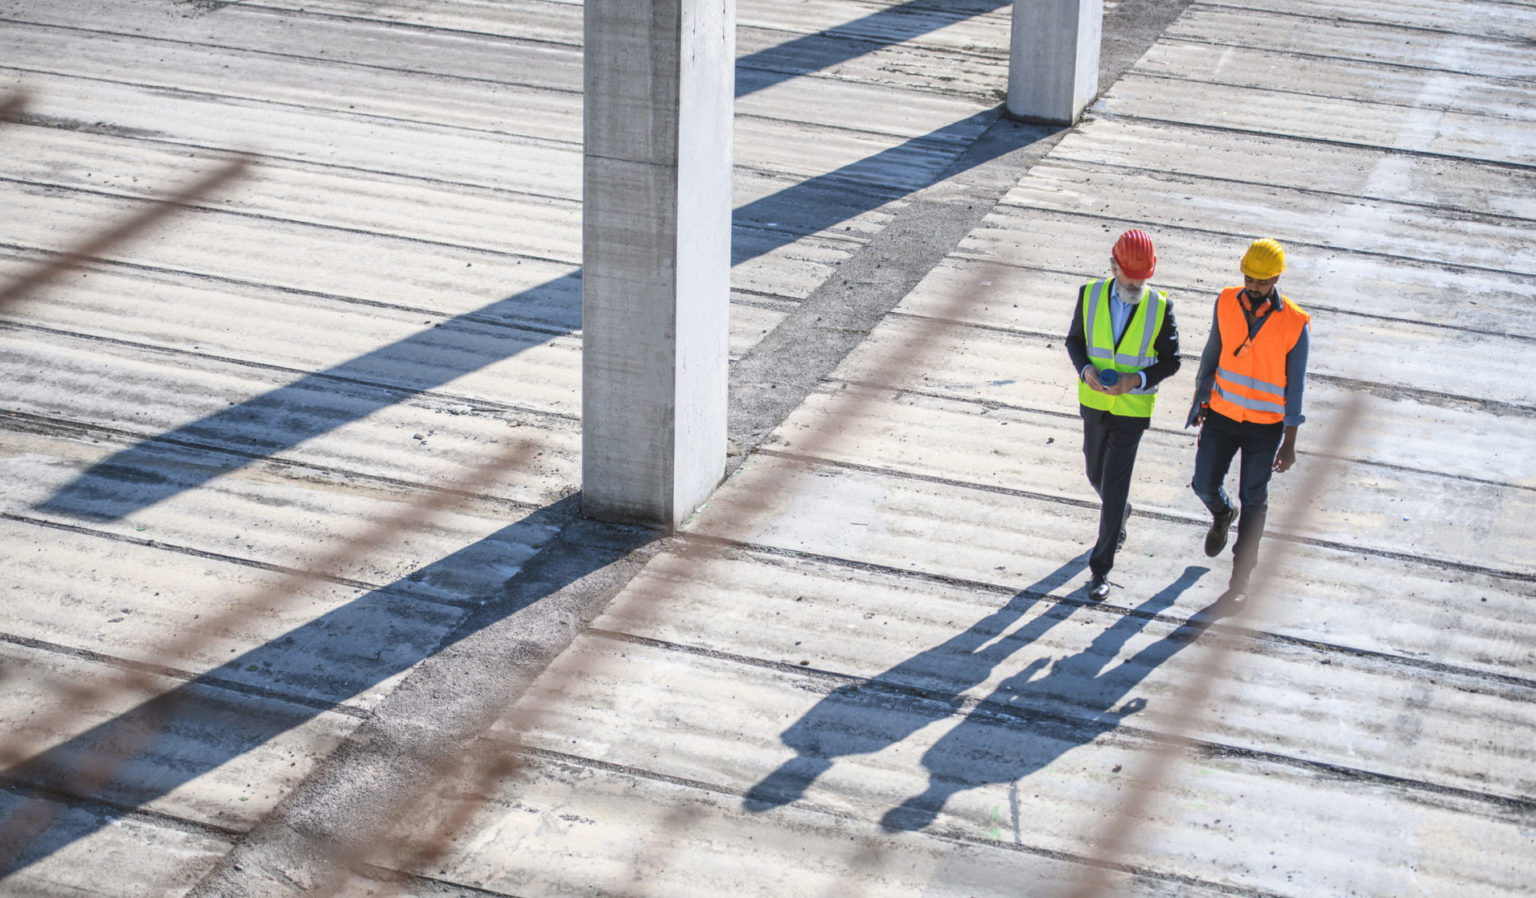 High Angle View of Construction Site Colleagues